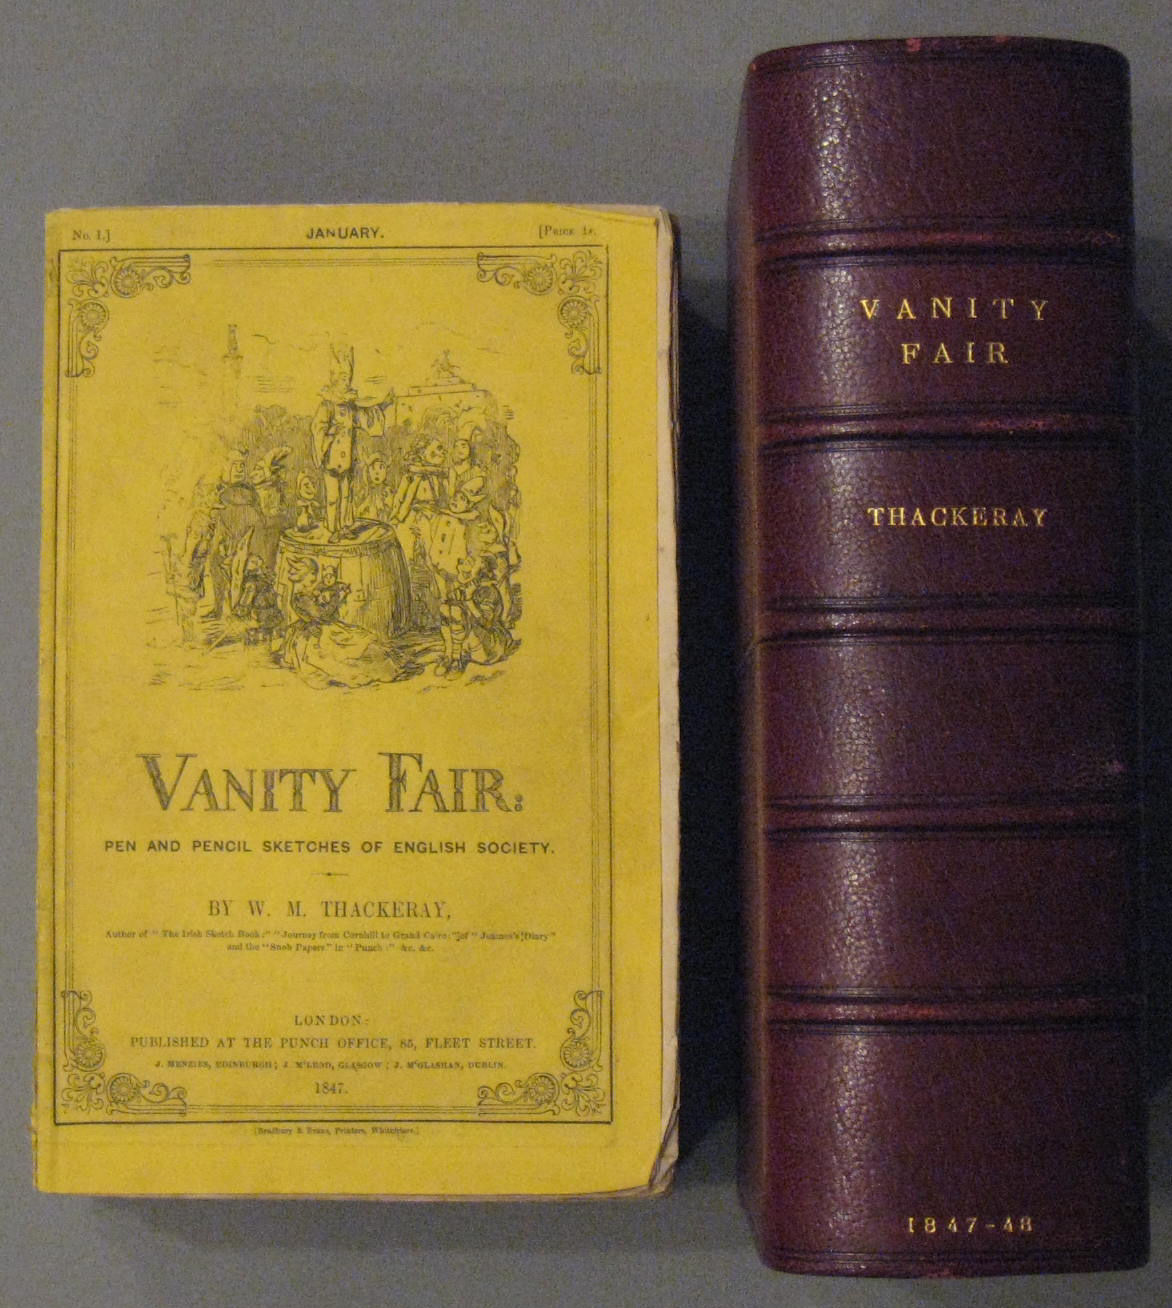 vanity fair a novel without a by w m thackeray paperback 1st edition 1847 from